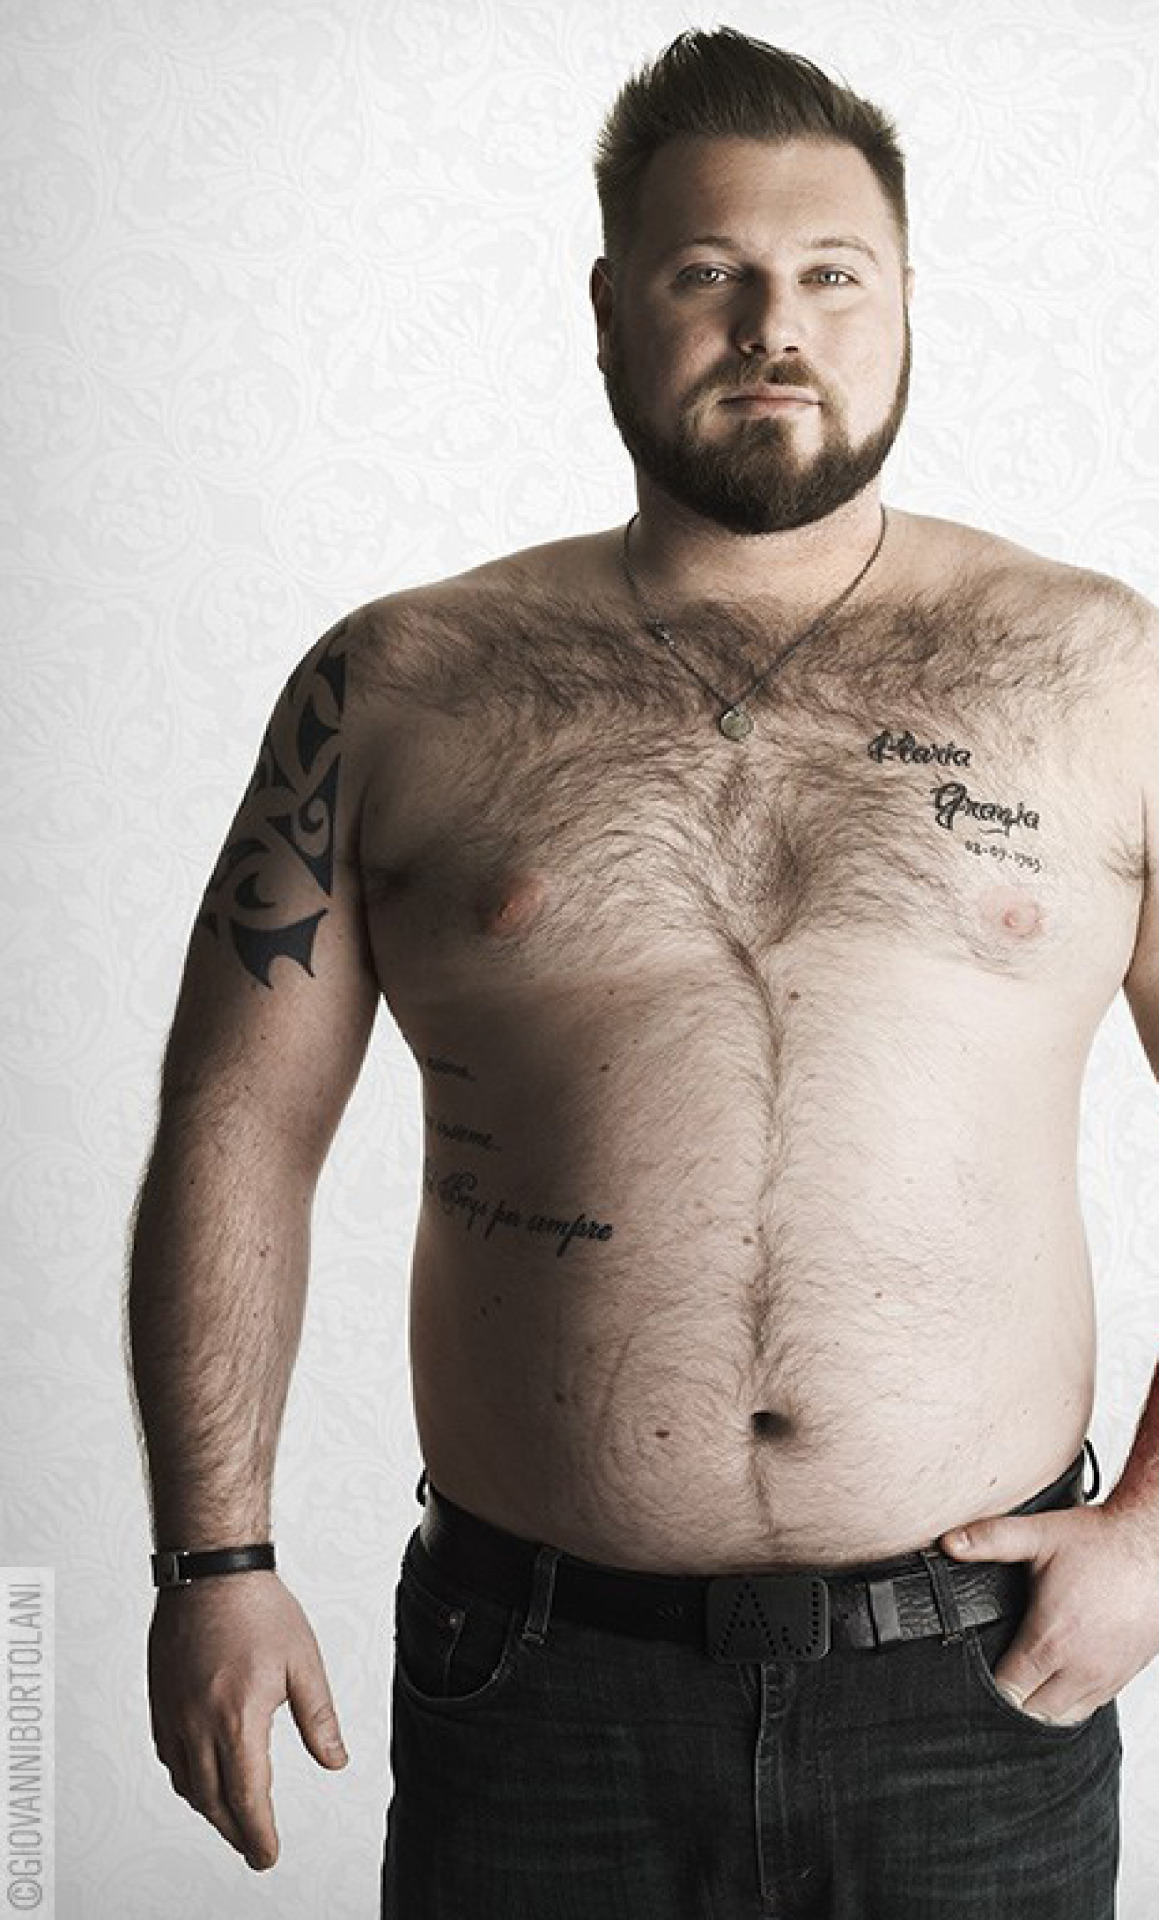 Chubby older fathers are more attractive to women and live